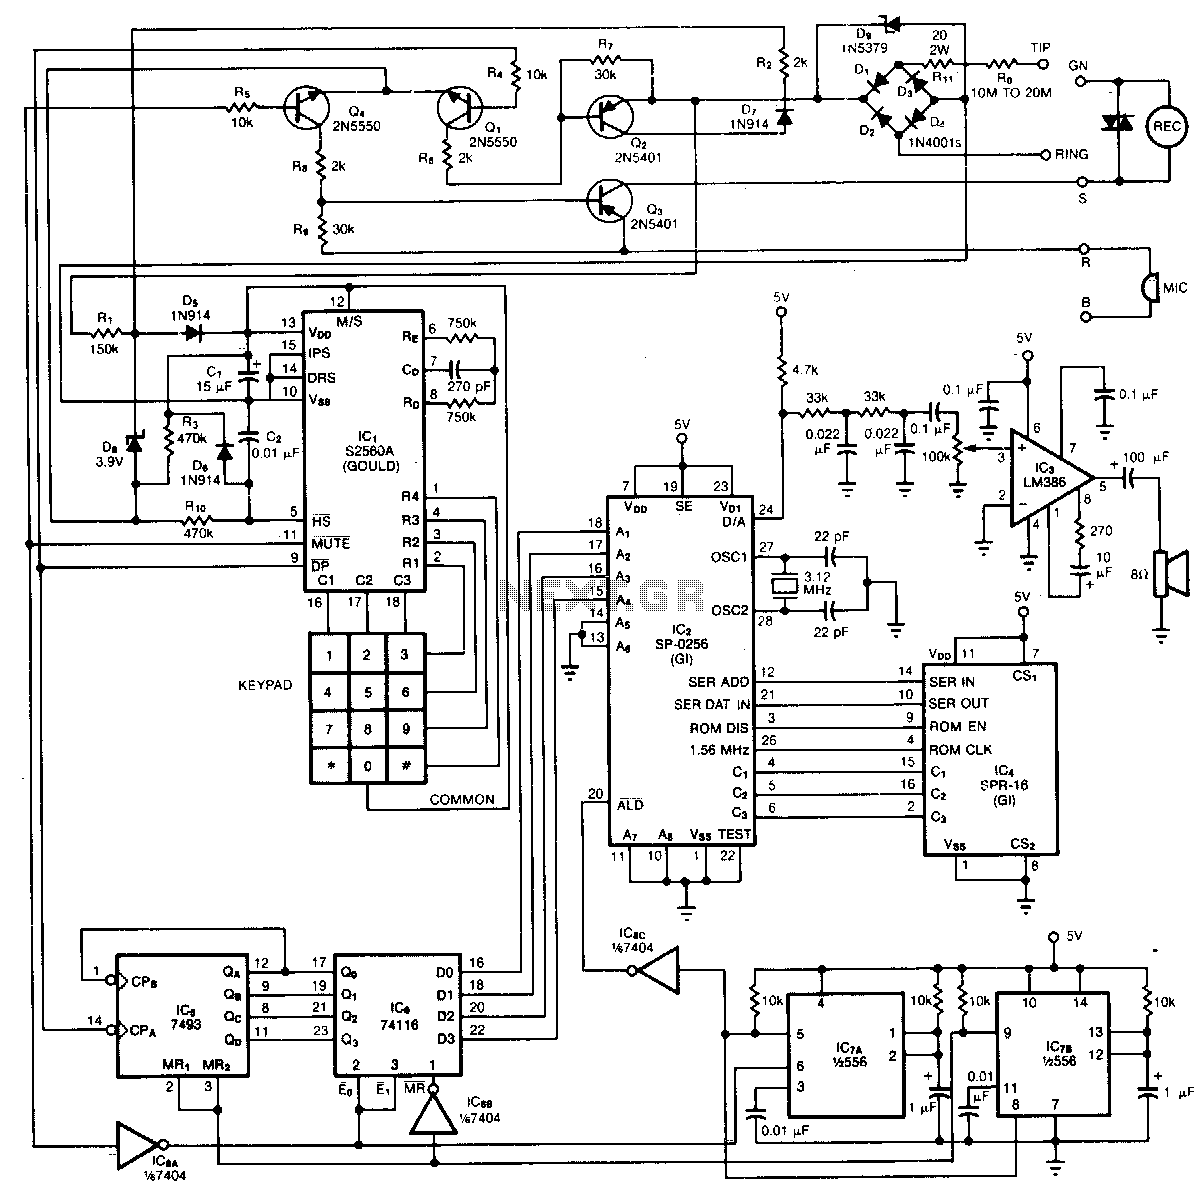 Dialed-phone-number-vocalizer - schematic